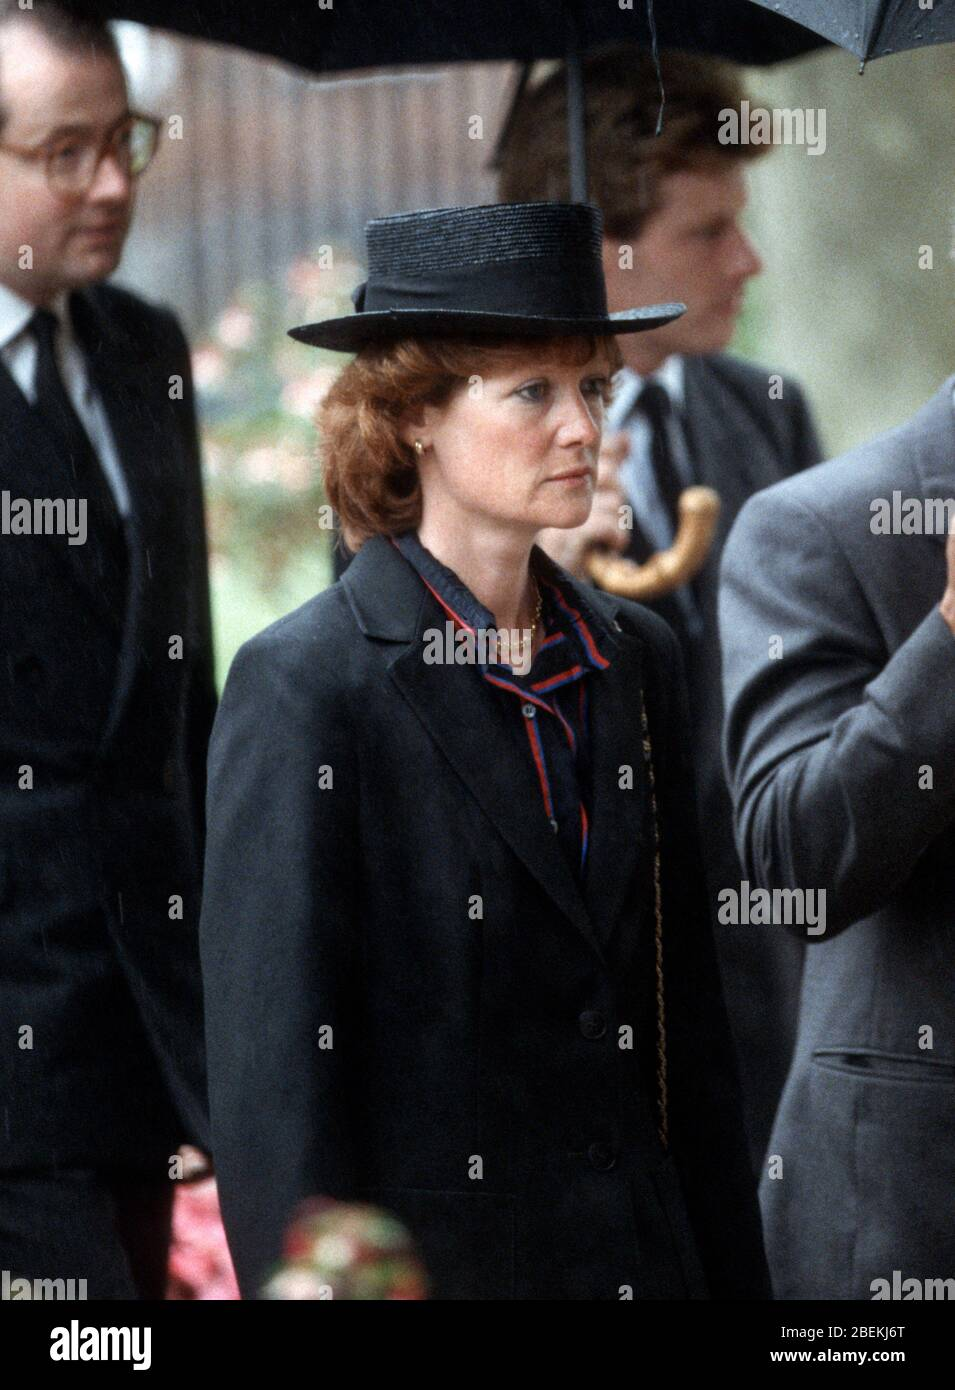 Lady Sarah Mccorquodale High Resolution Stock Photography and ...